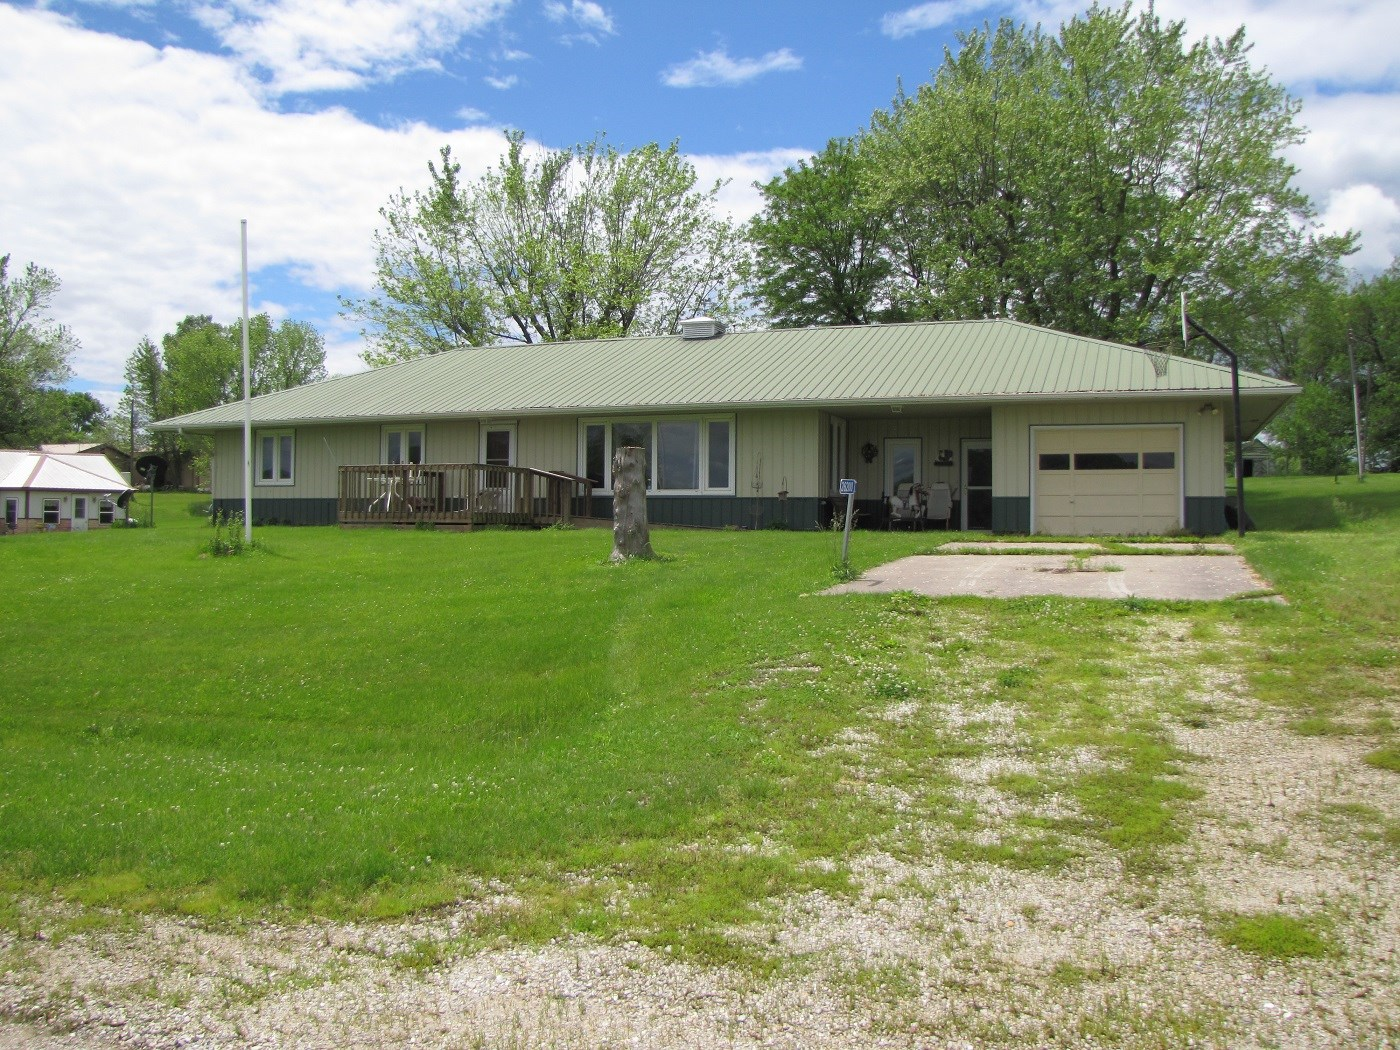 MO COUNTRY HOME ON SMALL ACREAGE FOR SALE, HOUSE & ACREAGE